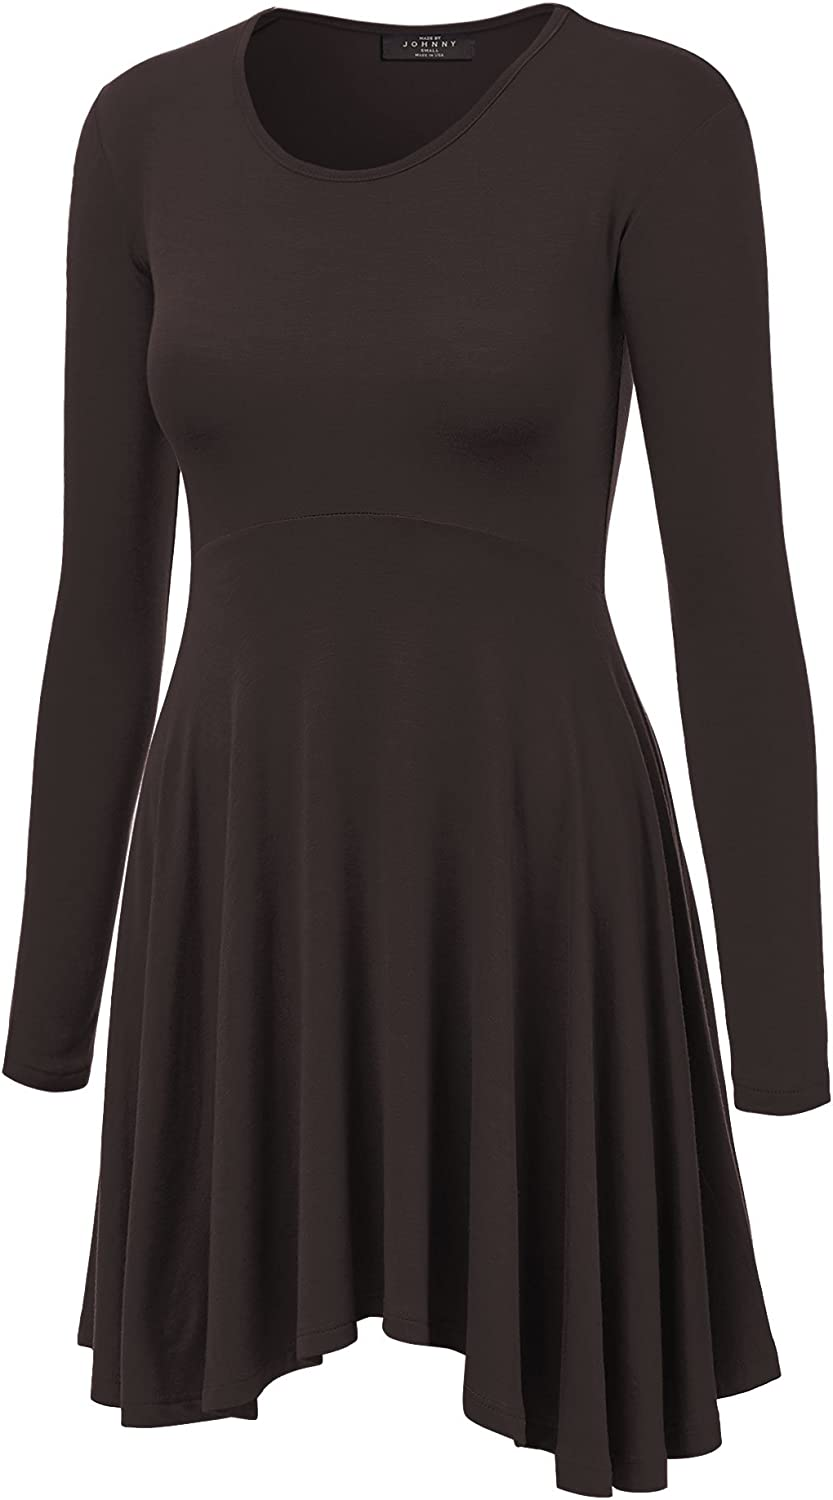 MBJ Womens Long Sleeve Curved Empire Line Draped Tunic Top  Made in USA